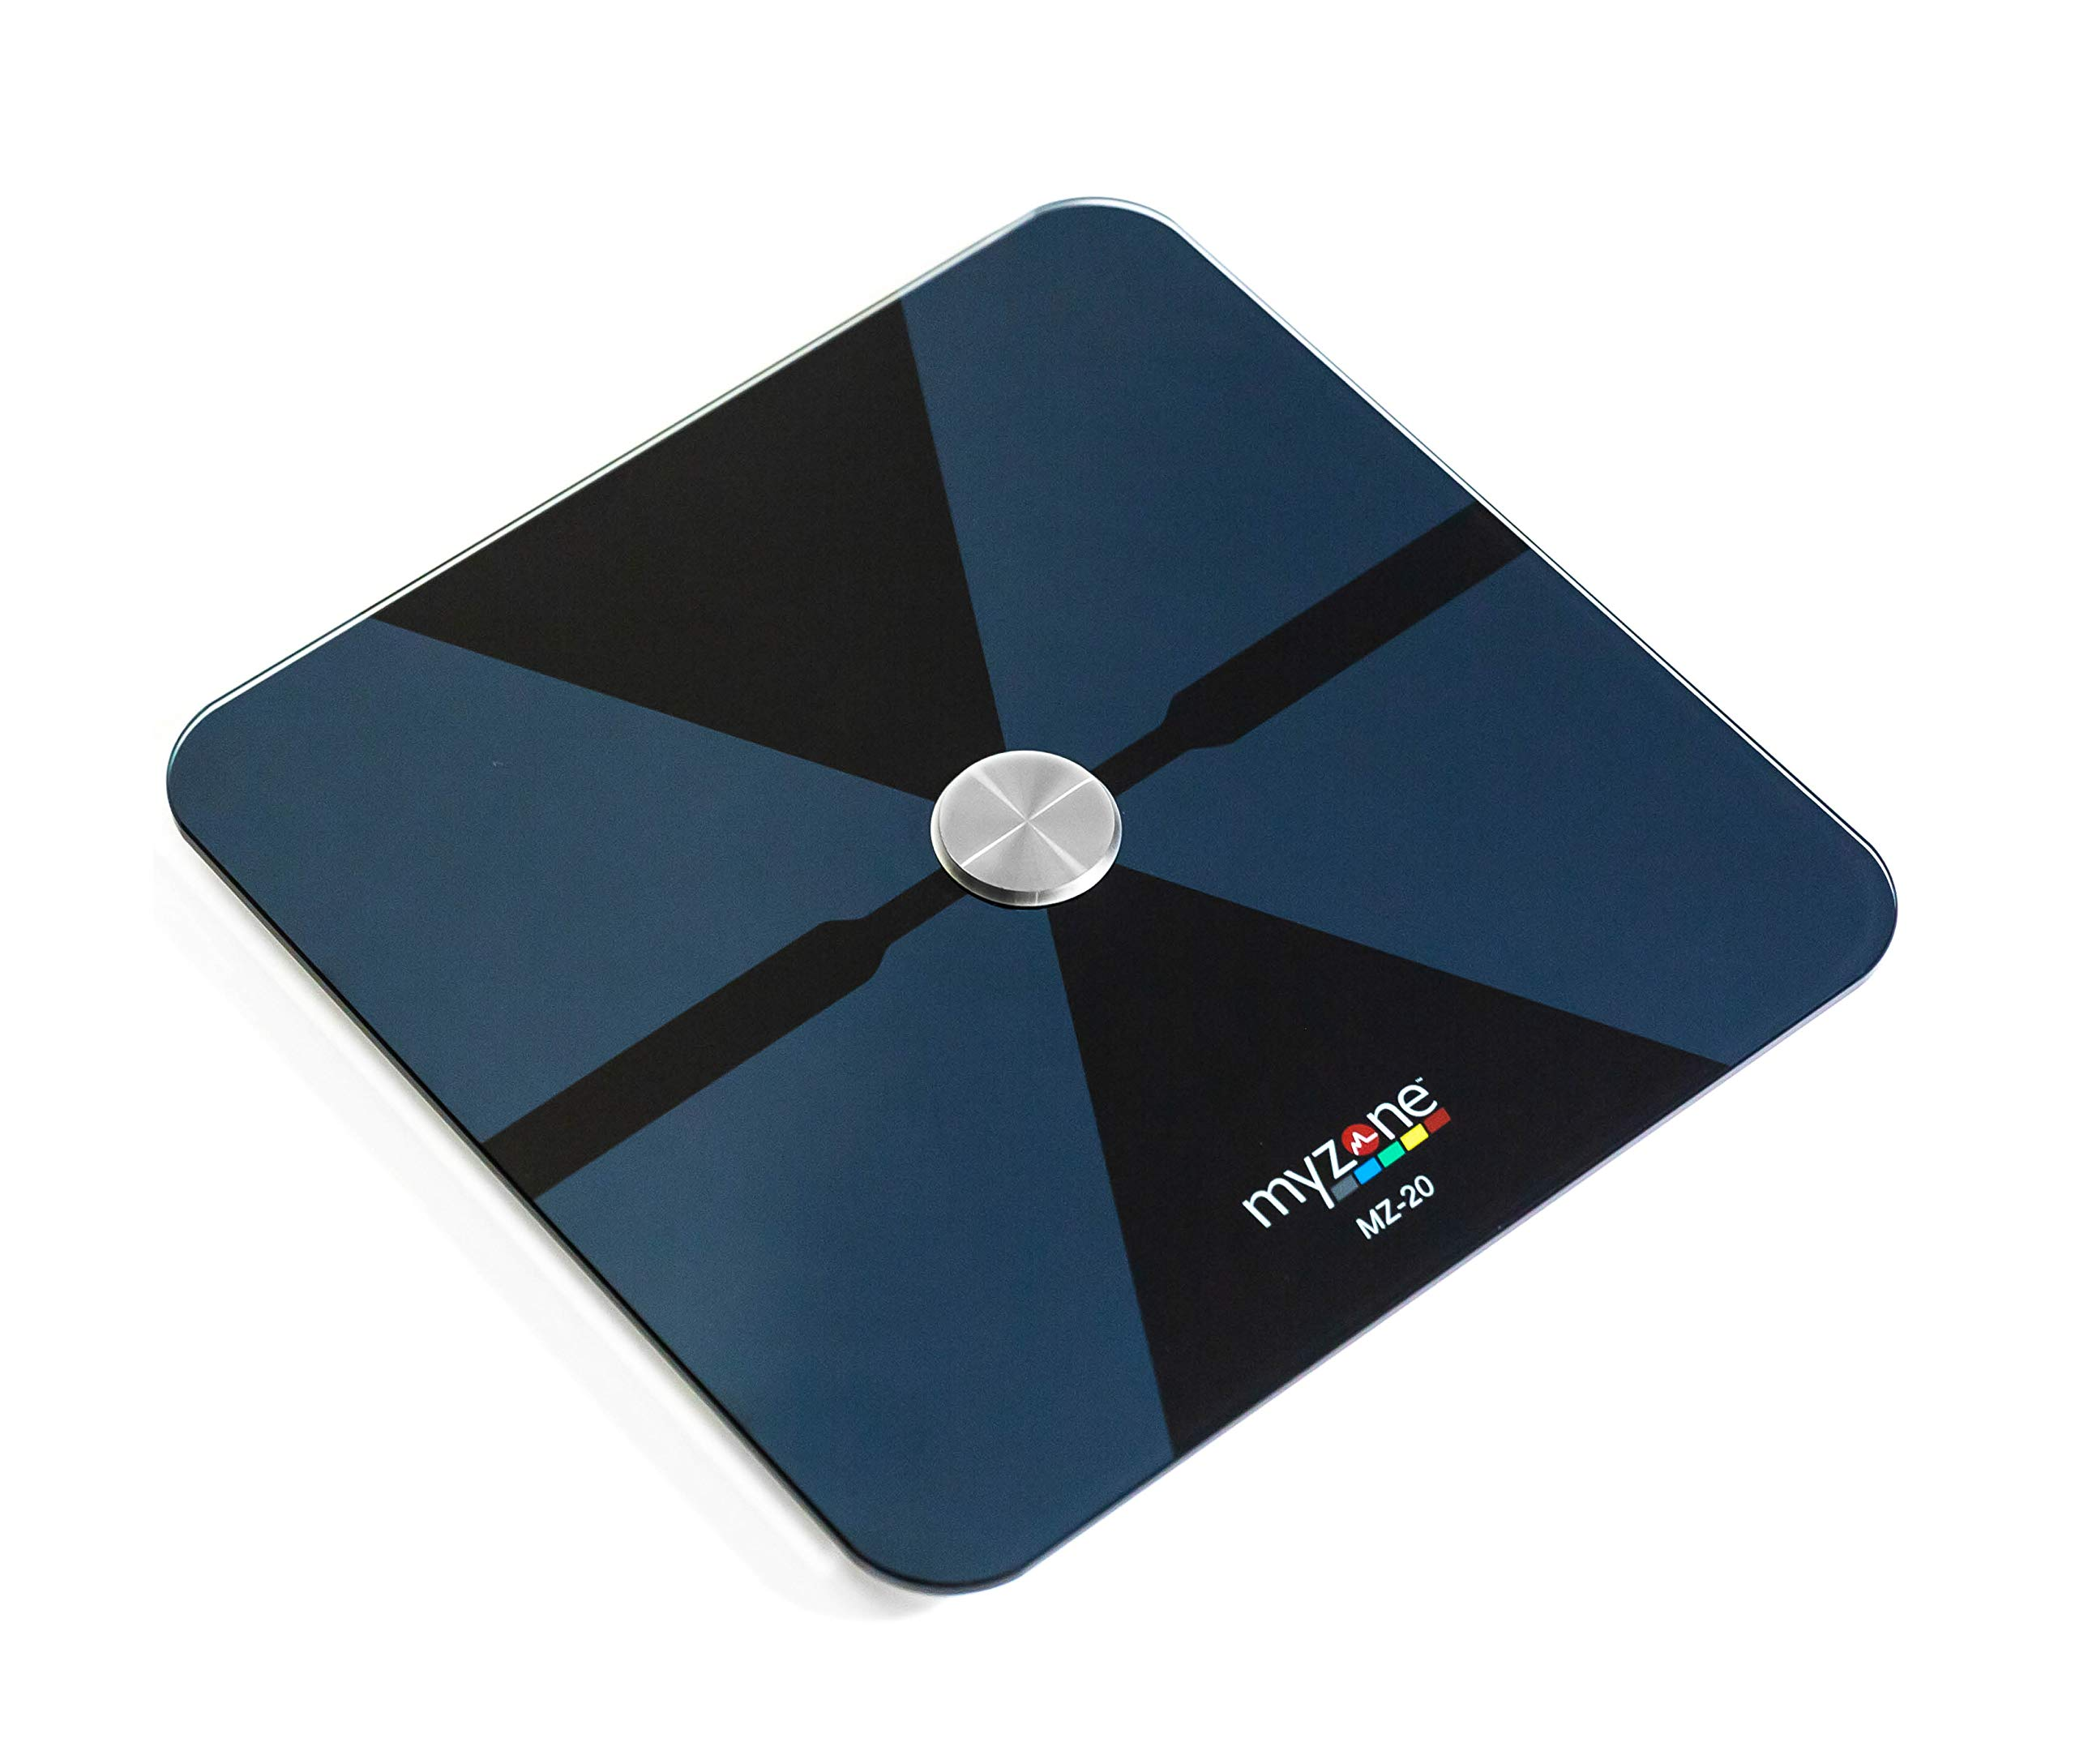 MYZONE MZ-20 Home Scale (Black) by Myzone (Image #2)